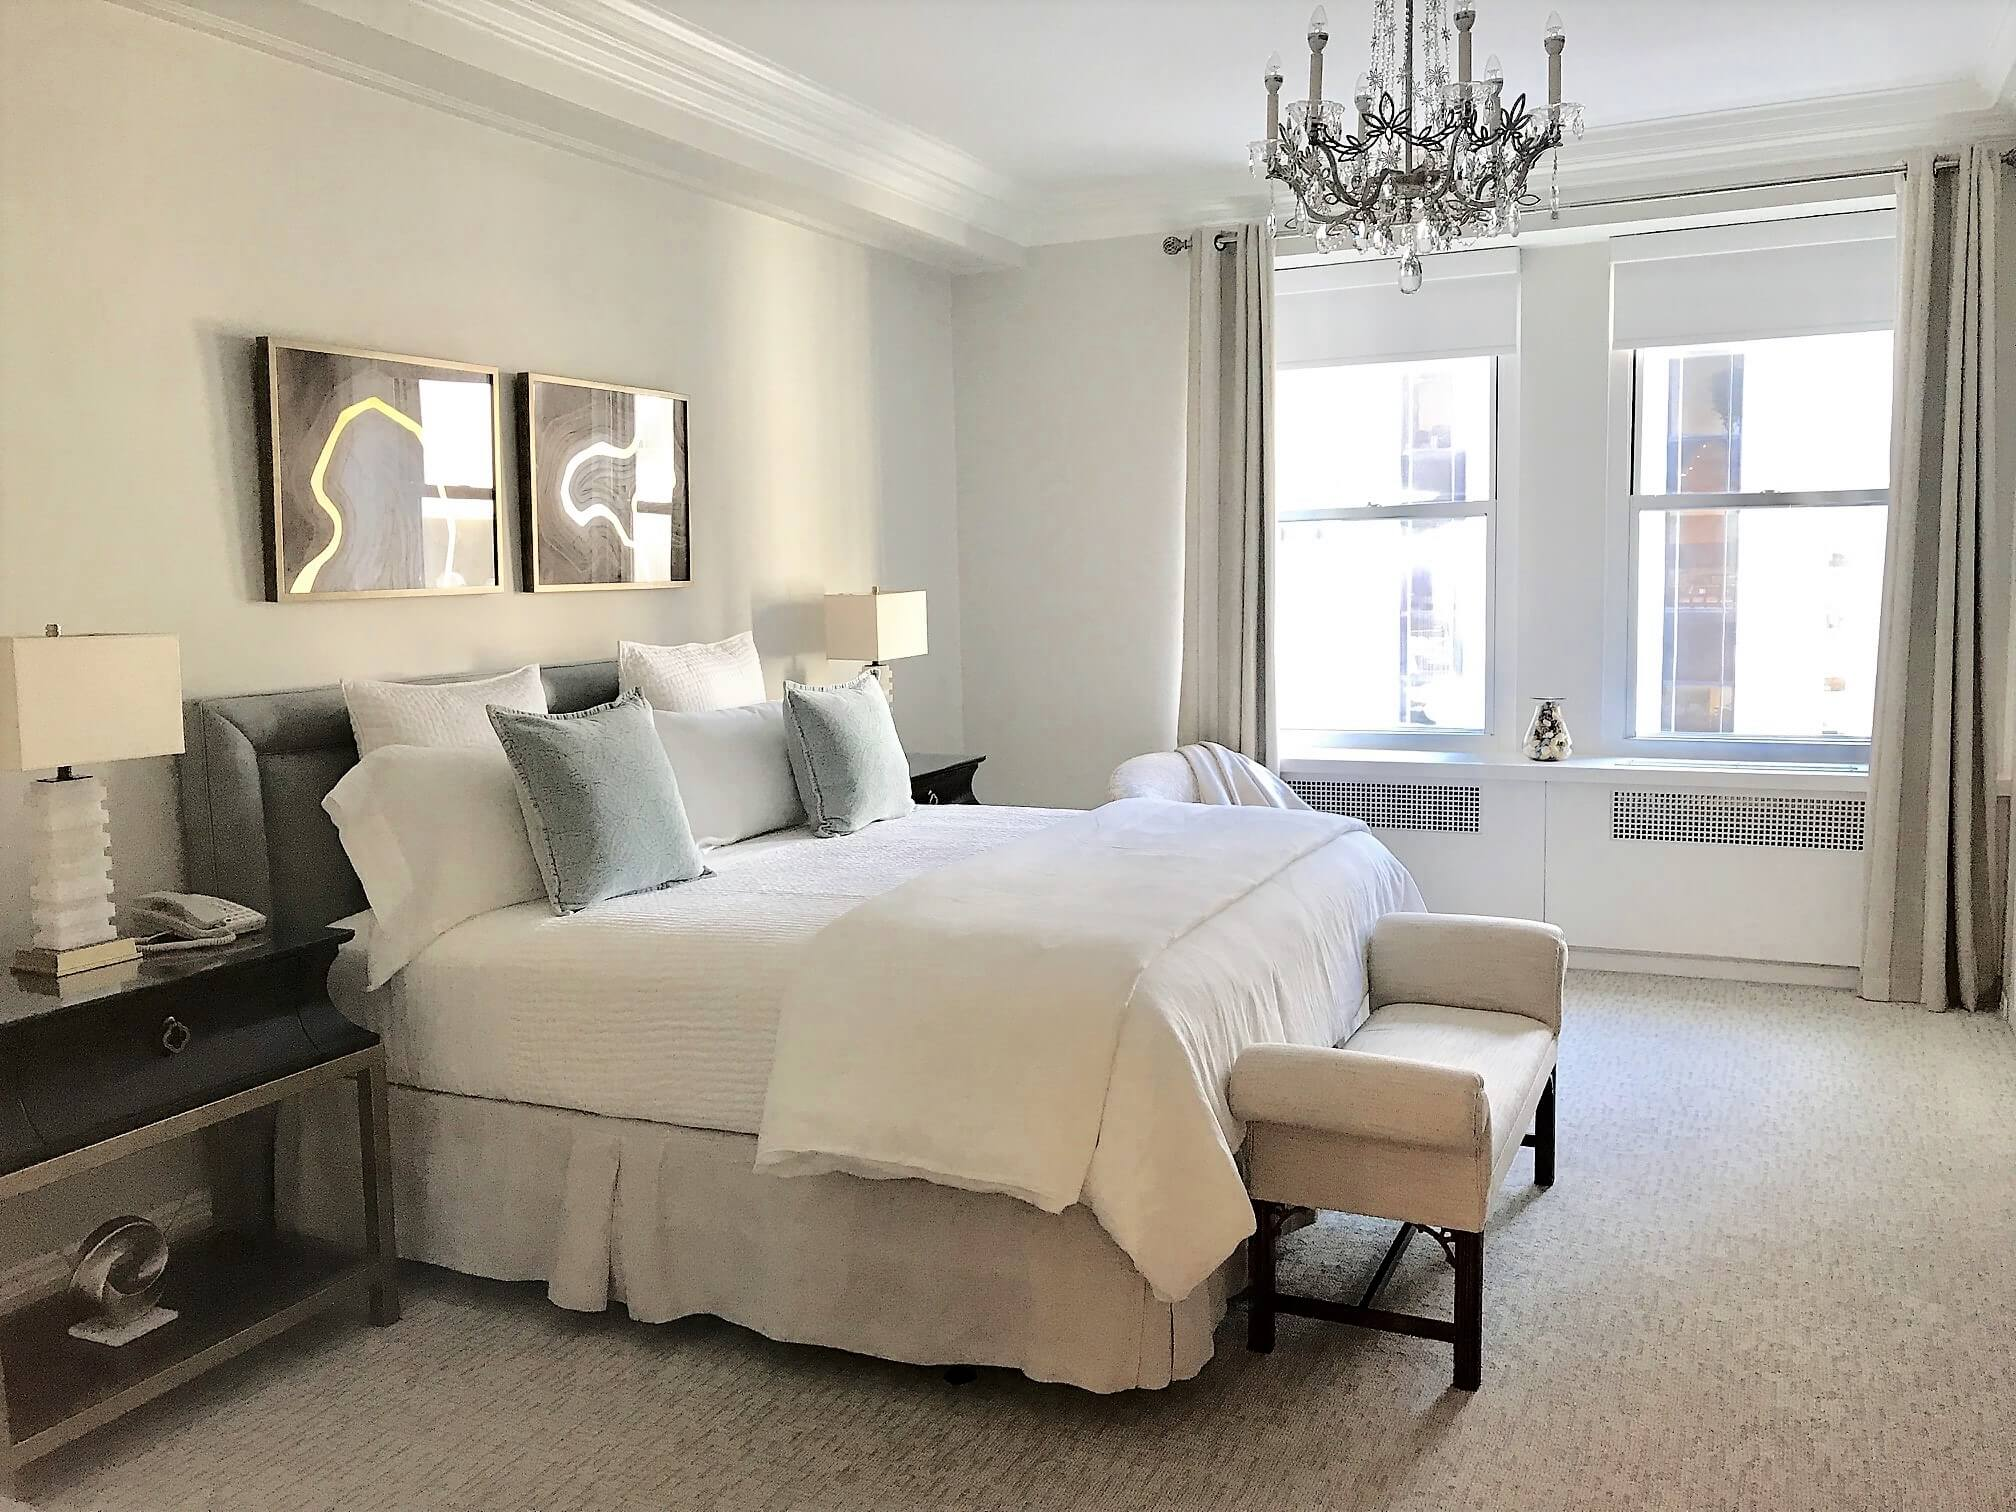 Apartments For Sale in New York City | Manhattan Apartments For Sale